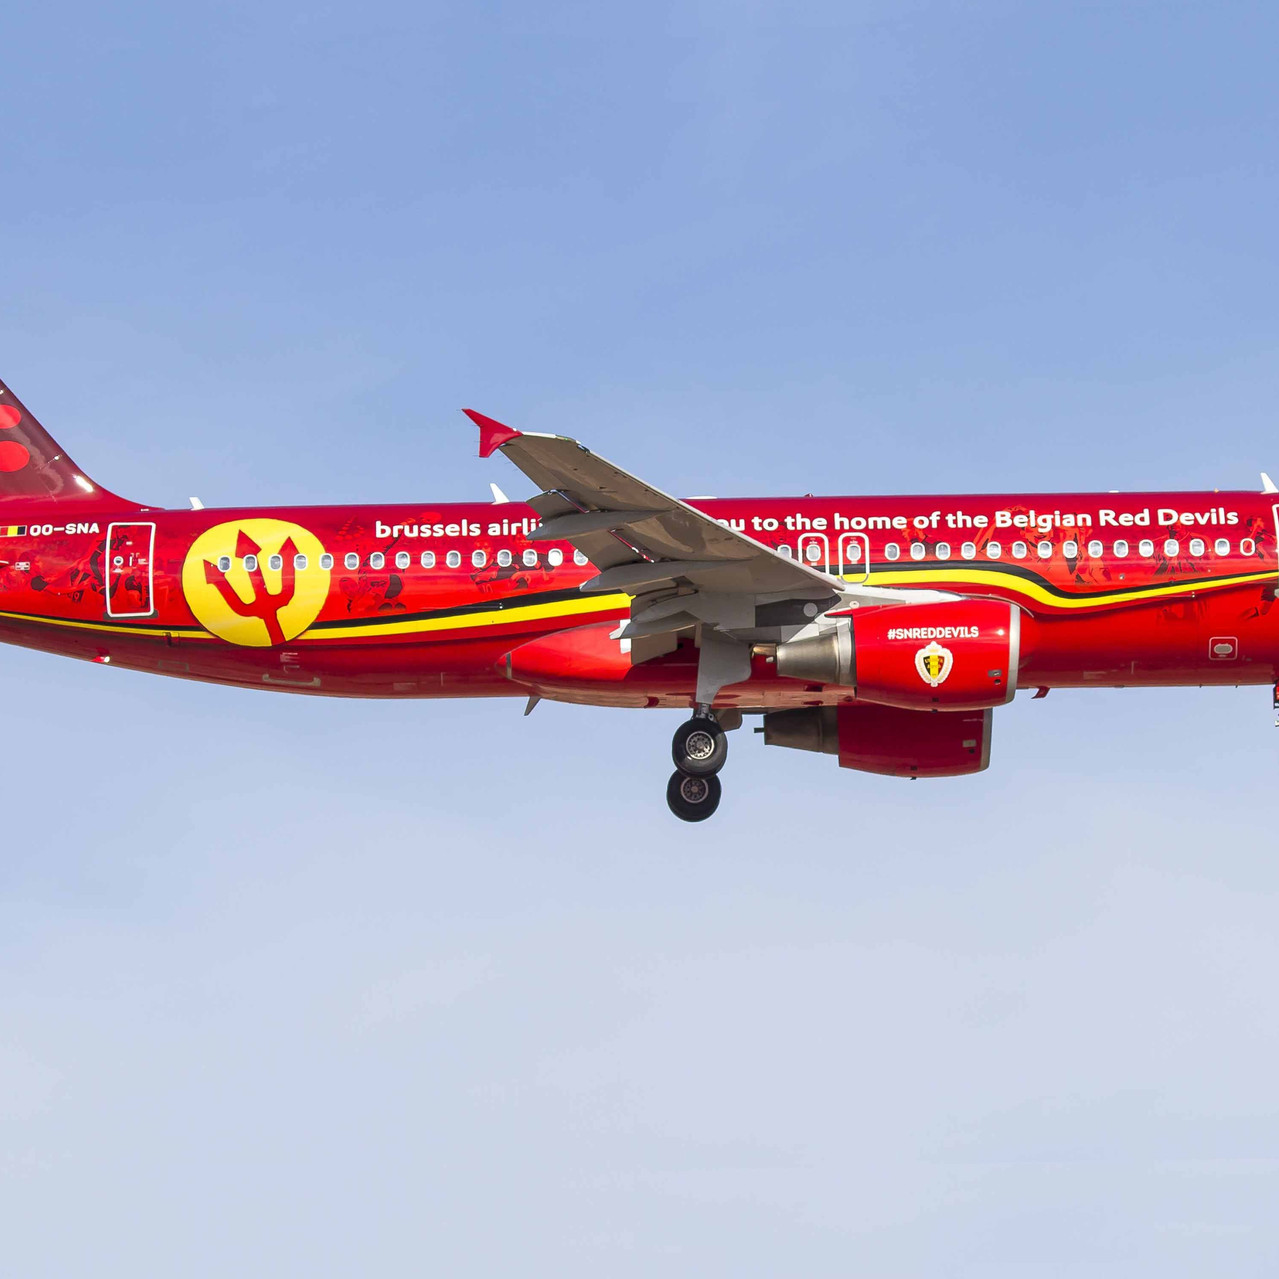 011_Brussels Airlines_OO-SNA_red devils.